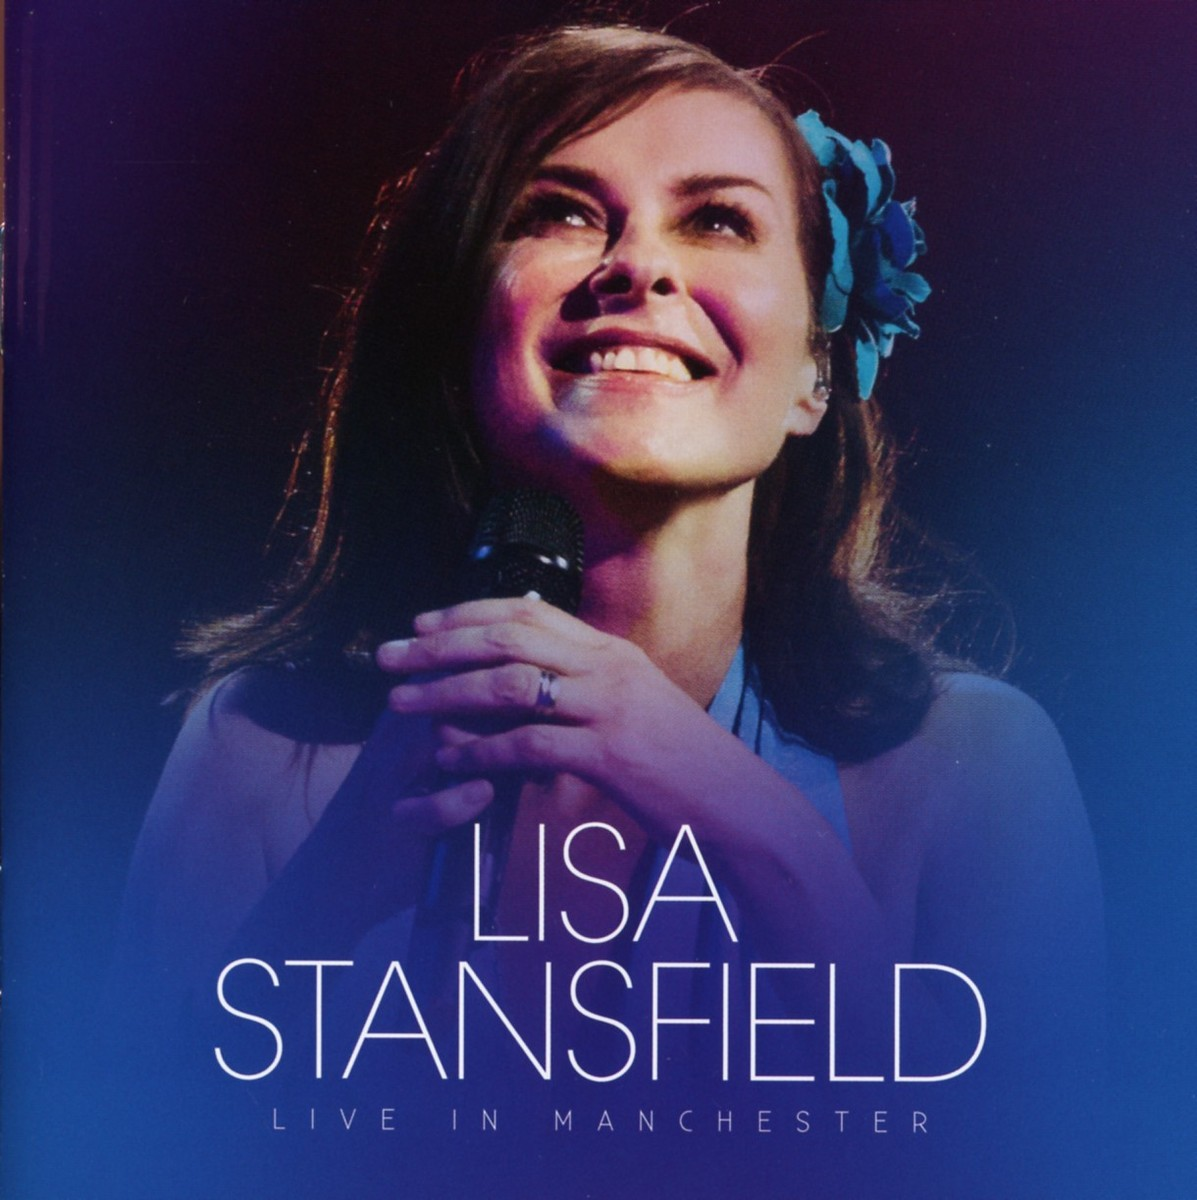 Lisa-Stansfield-Live-in-Manchester